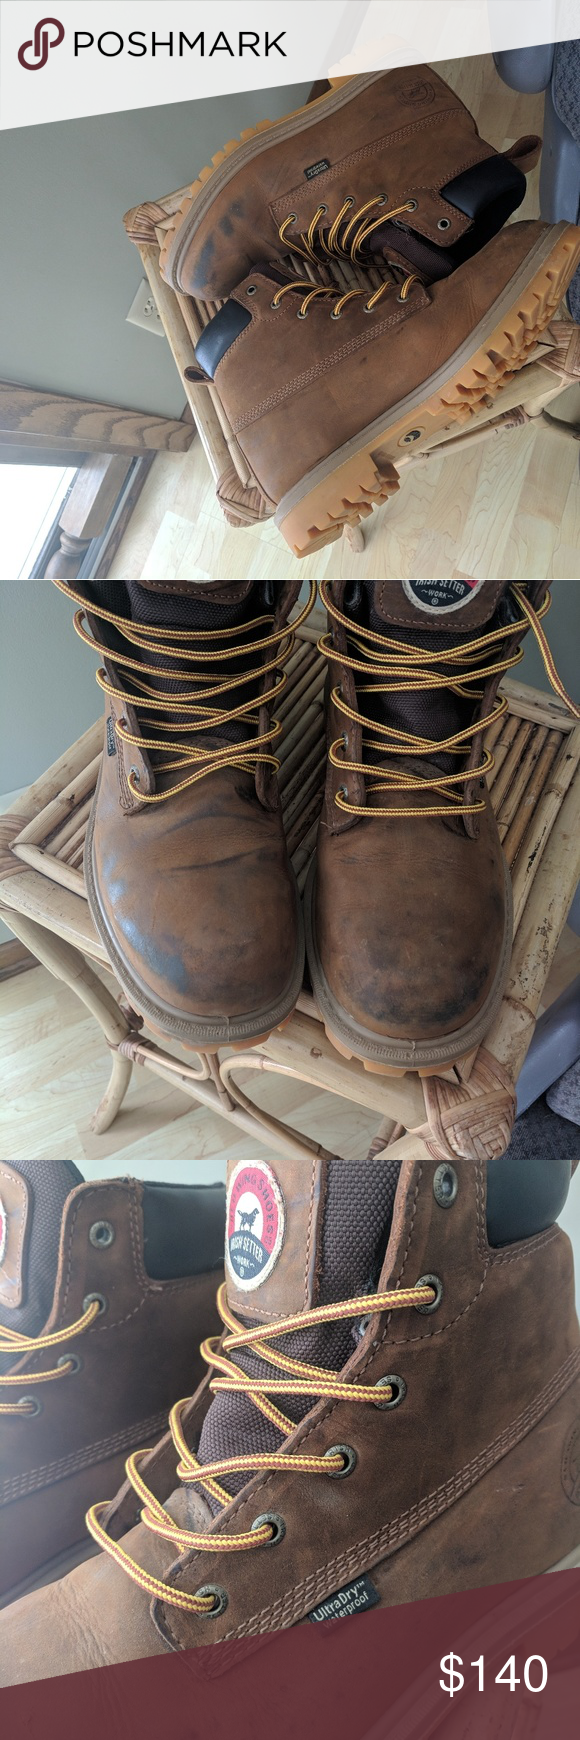 Red Wing Irish Setter work boots Boots, Work boots